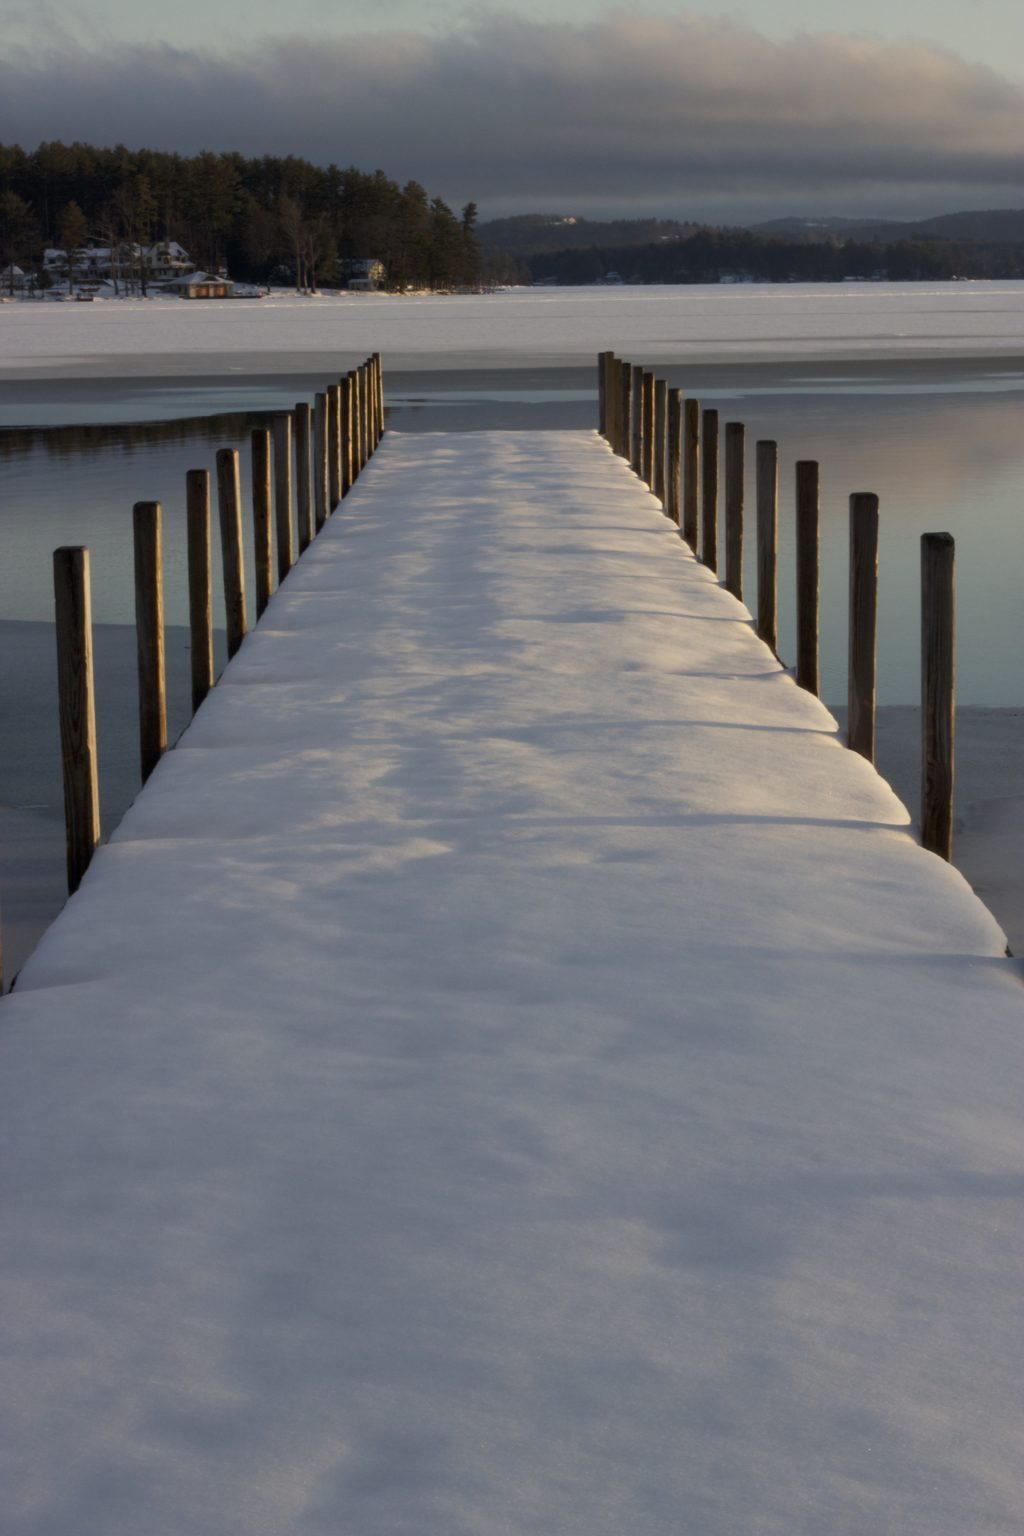 Snowy Dock by the Lake